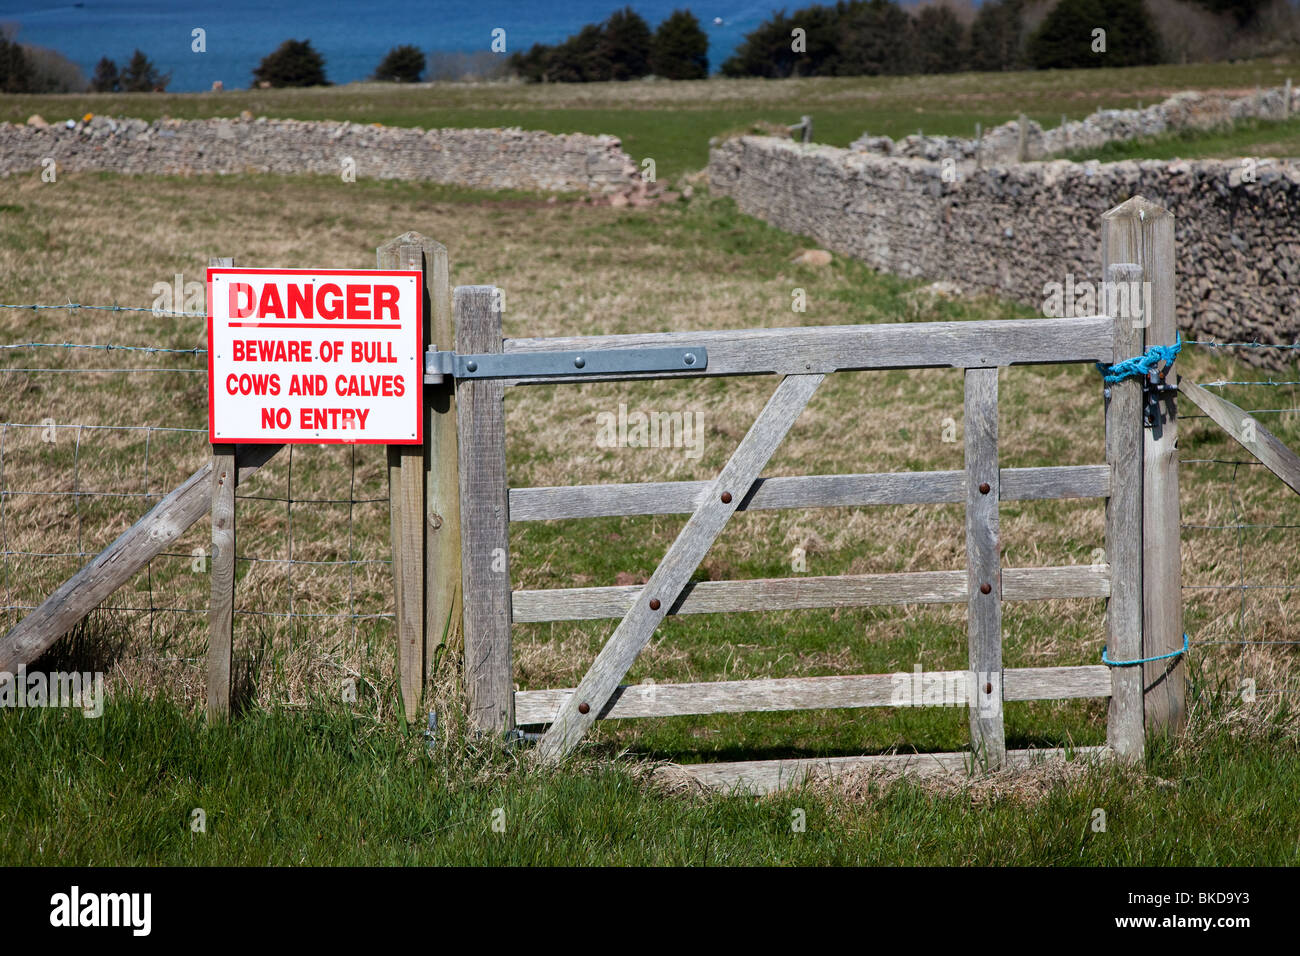 Danger Beware of bull cows and calves no entry sign on gate Caldey Island Wales UK Stock Photo